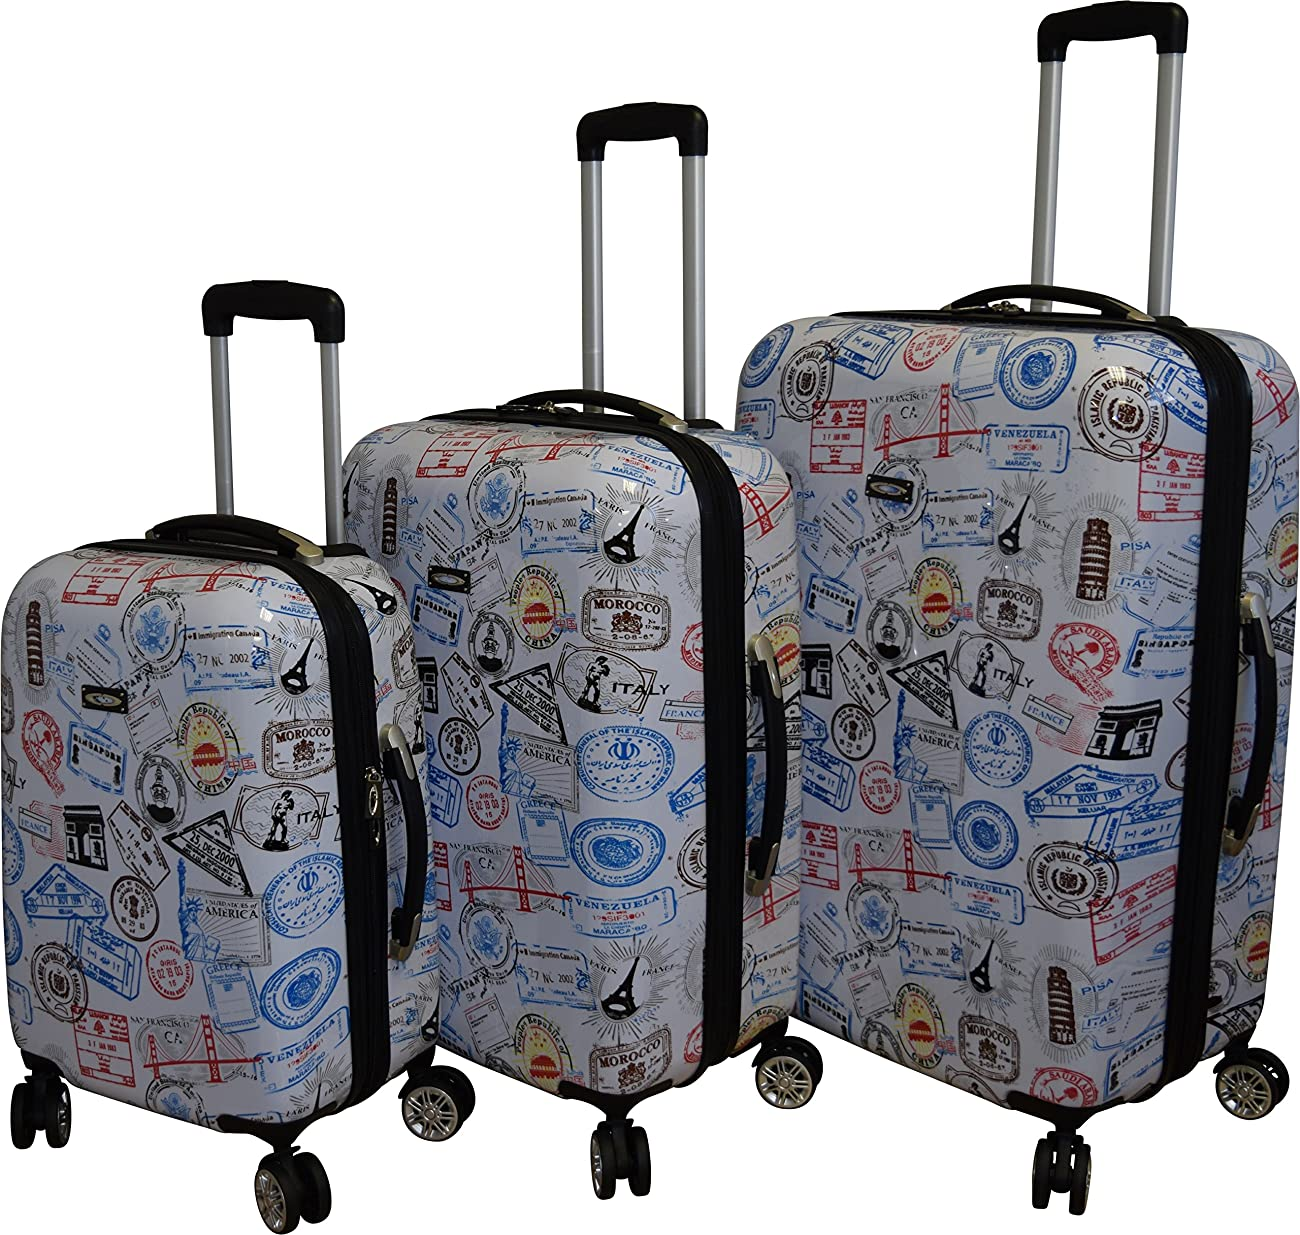 Kemyer 788 Vintage World Series Lightweight 3-PC Expandable Hardside Spinner Luggage Set 1